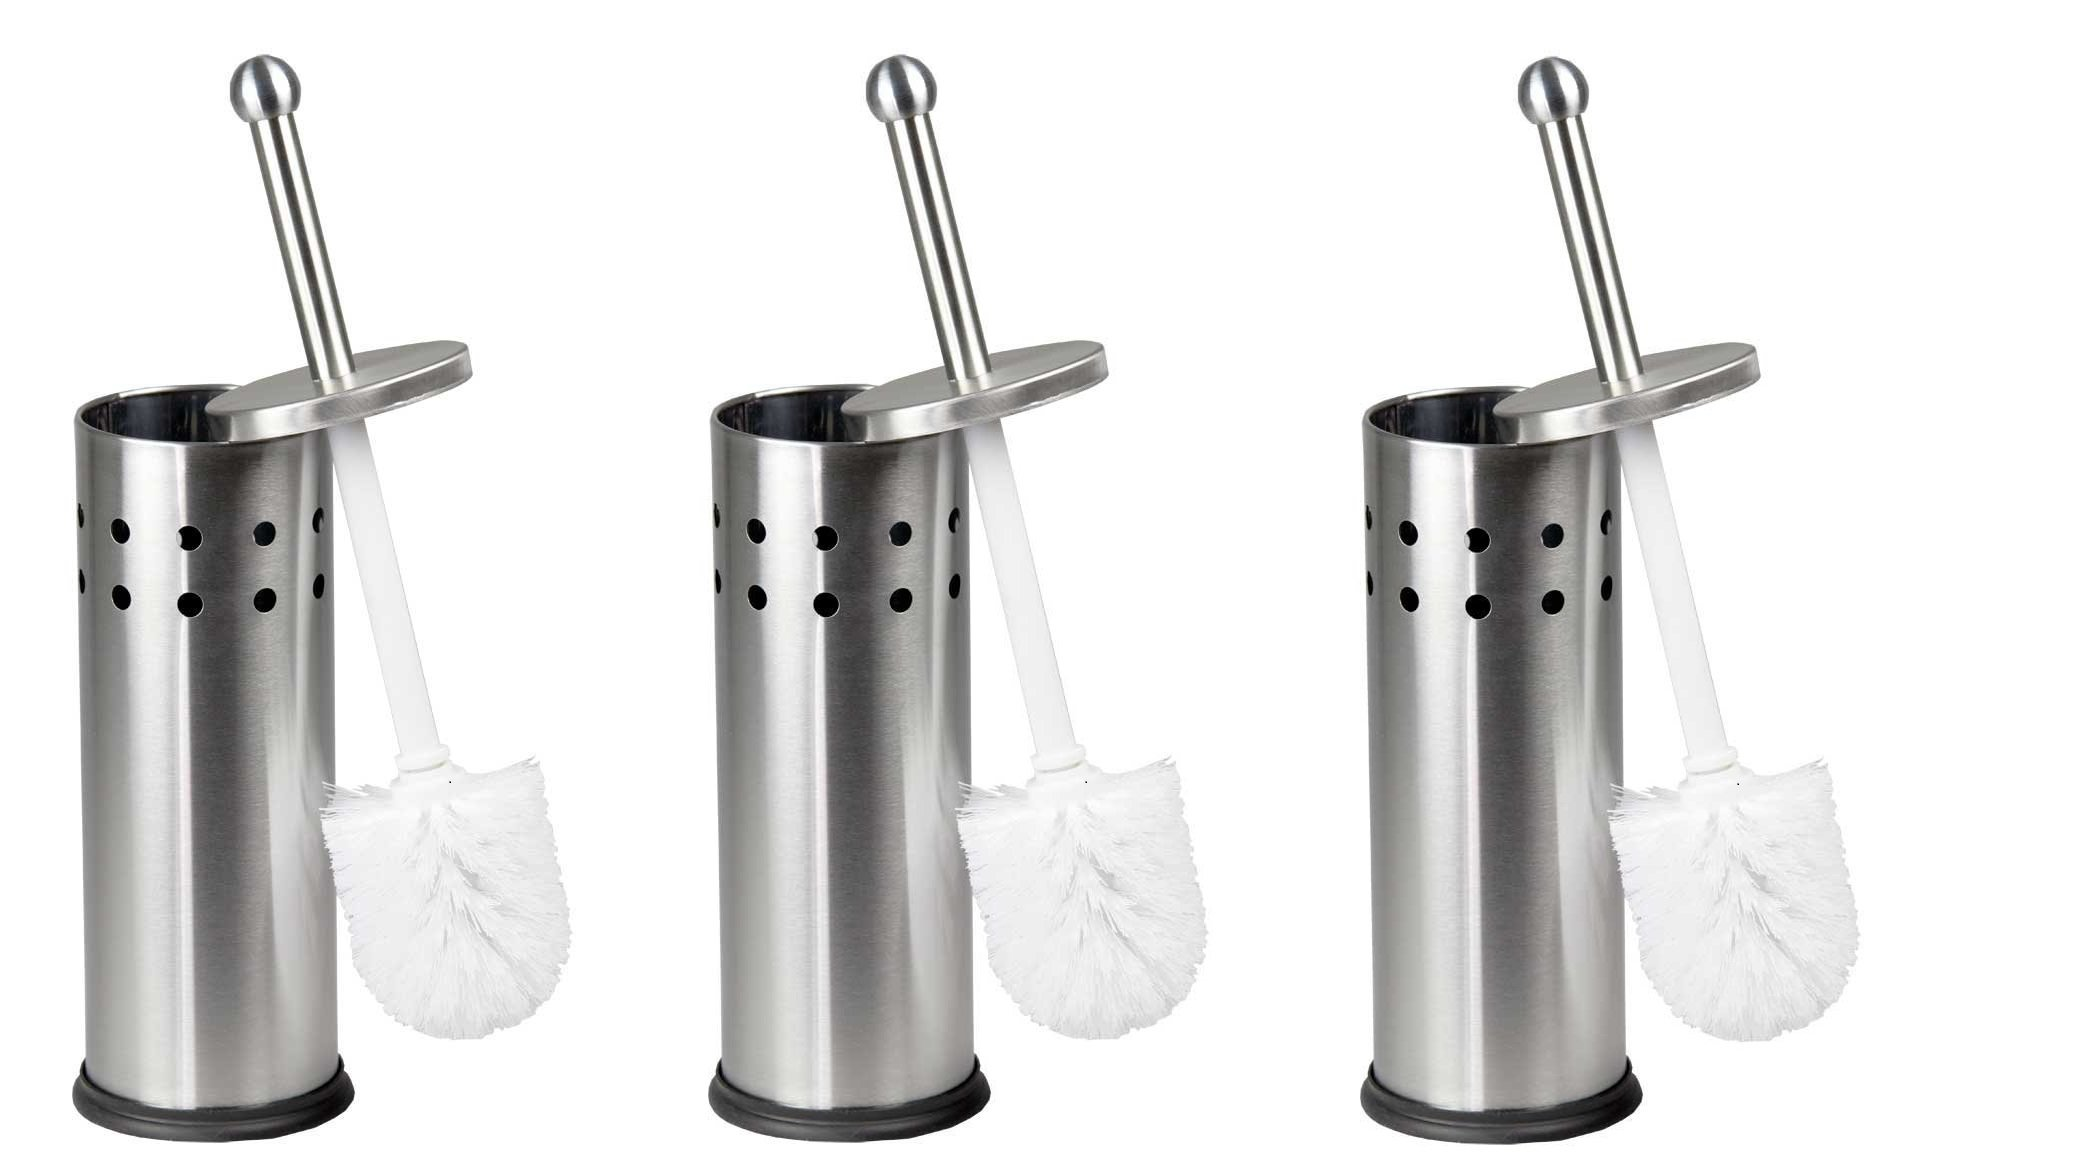 Home Basics Vented Stainless Steel Toilet Brush Holder (Pack of 3) by Home Basics (Image #1)